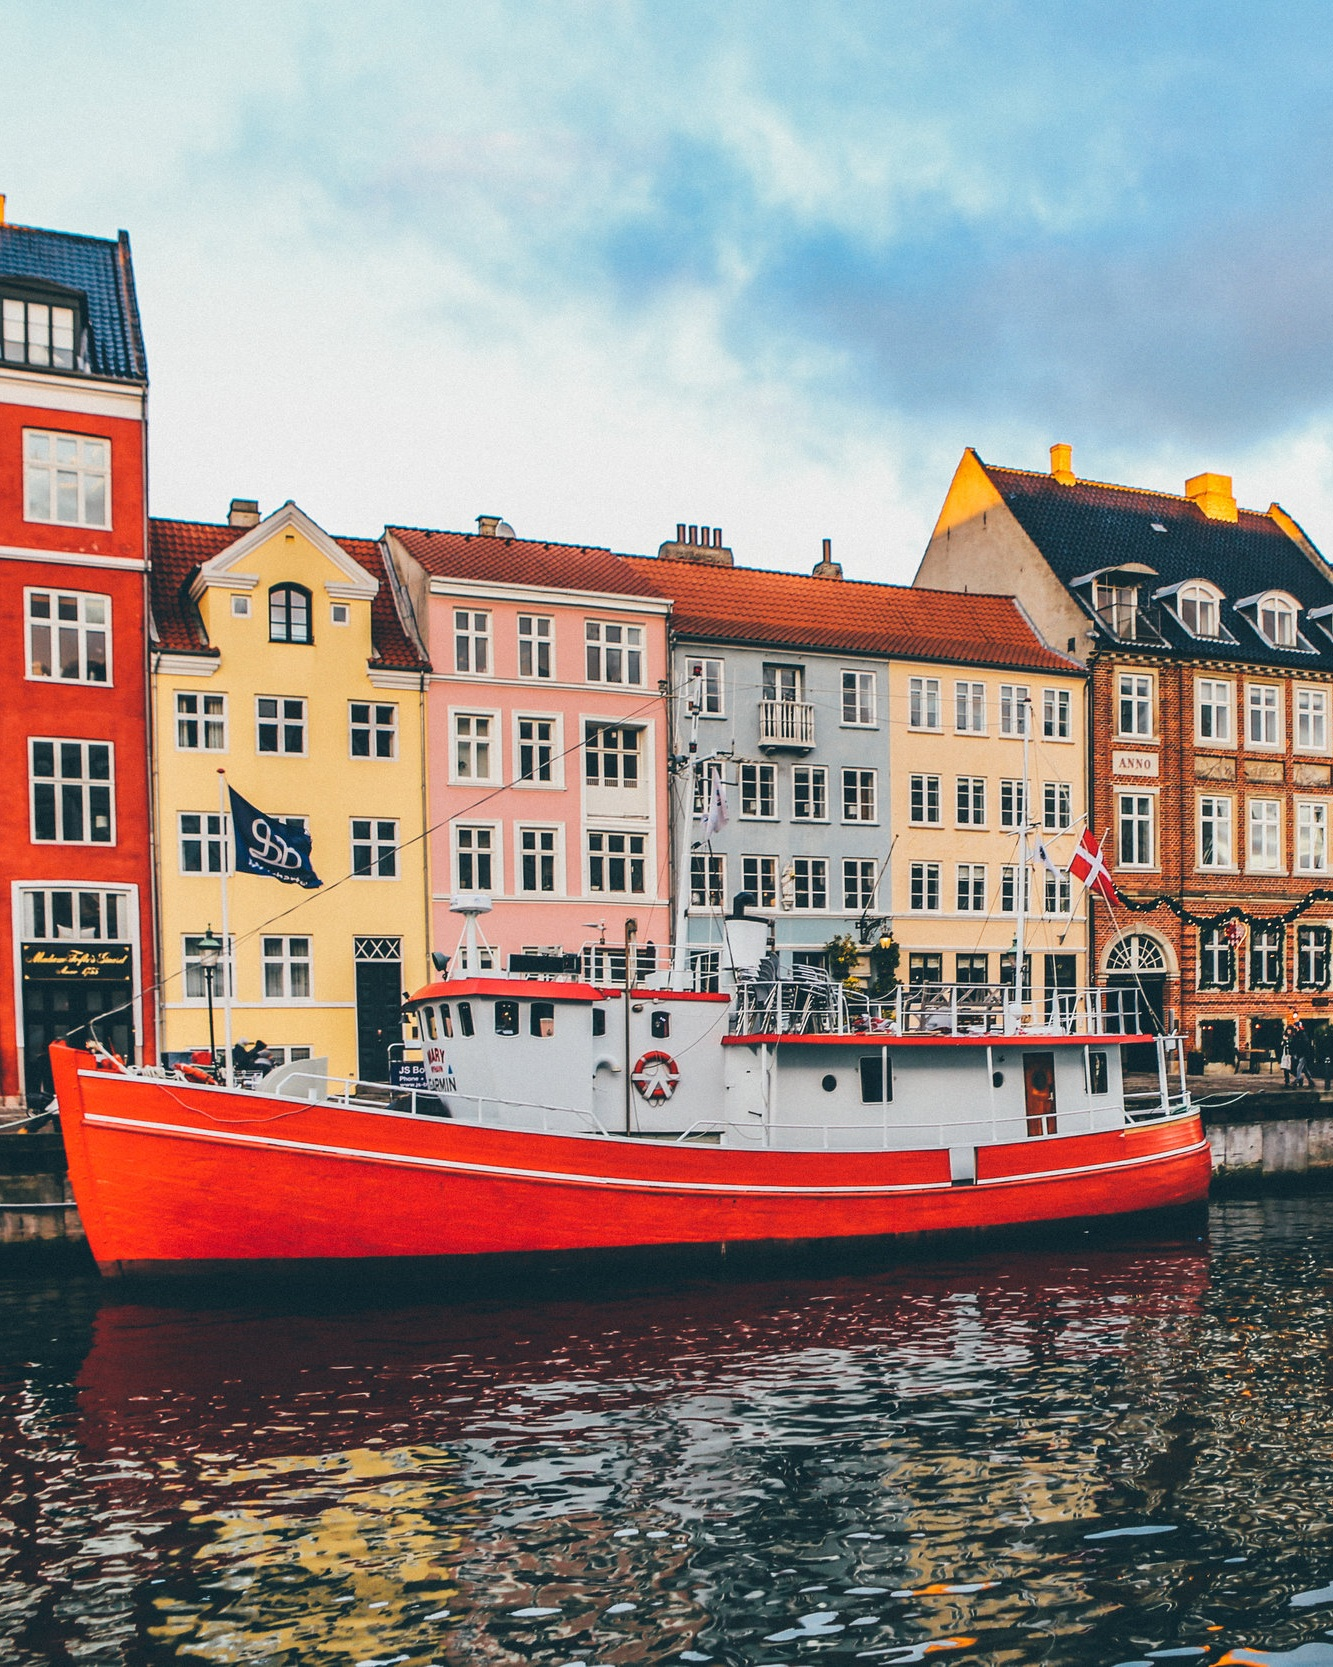 COPENHAGEN — From Brief to Pitch - Wednesday 25th September - 9.30am - 5.30pmCitizen M Hotel, Radhuspladsen. Copenhagen.H.C. Andersens Boulevard 121553 Copenhagen£350 p/p (billed in GBP) - this course is in English EXCLUSIVE COURSE LIMITED TO 10 PLACES